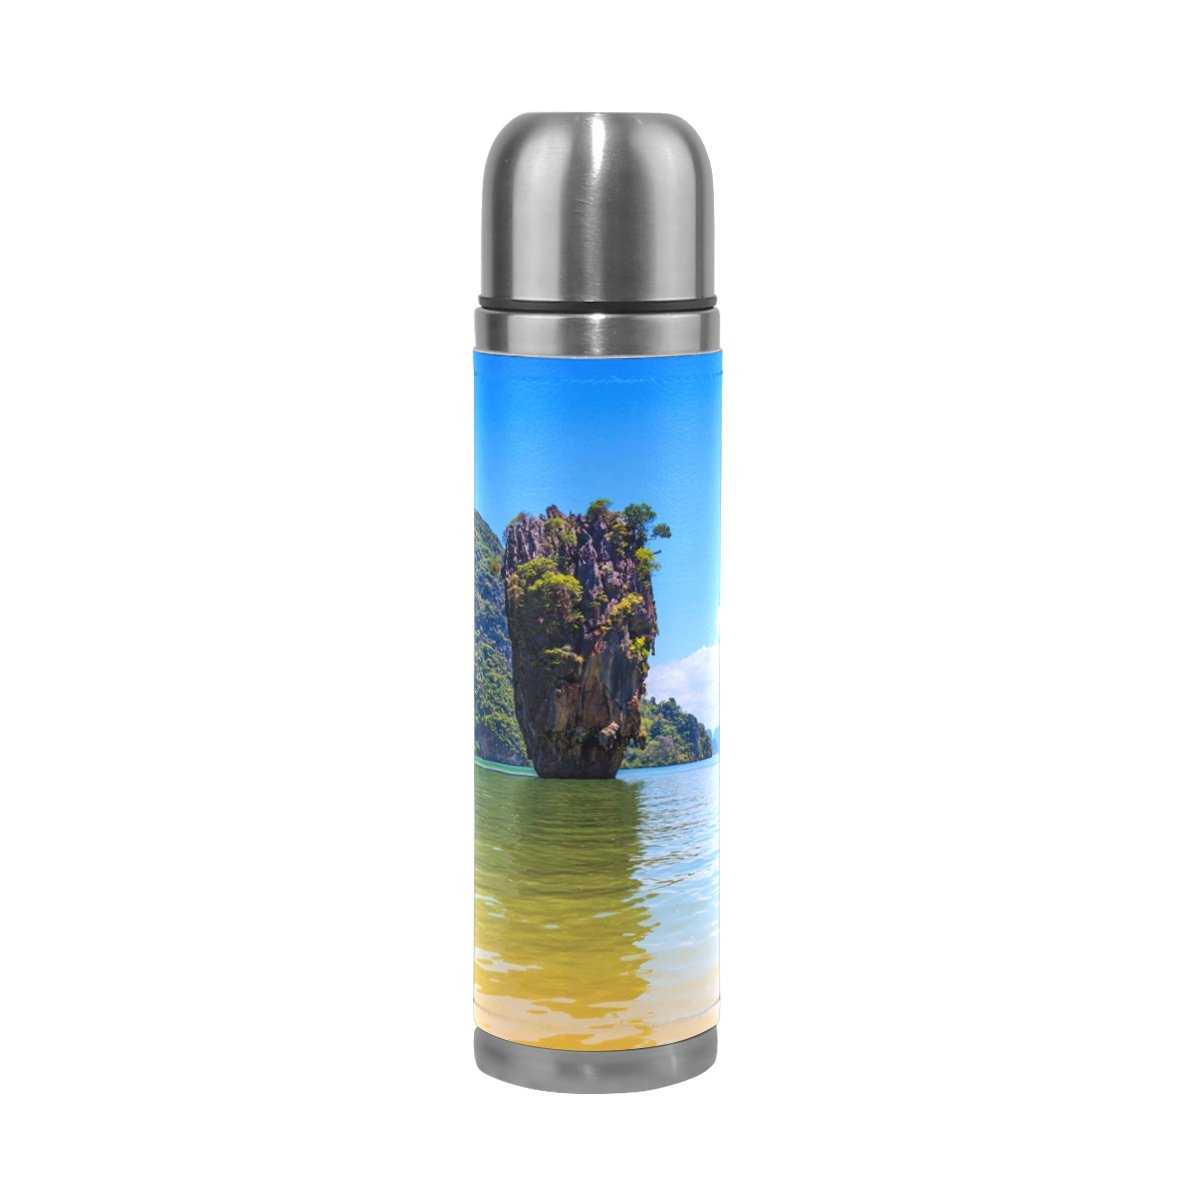 LEISISI Beautiful Thai Coast Stainless Steel Water Bottle Leak-Proof Vacuum Insulated Flask Pot Sport Double Wall Water Bottle PU Leather Travel Thermos Mug 17 Oz